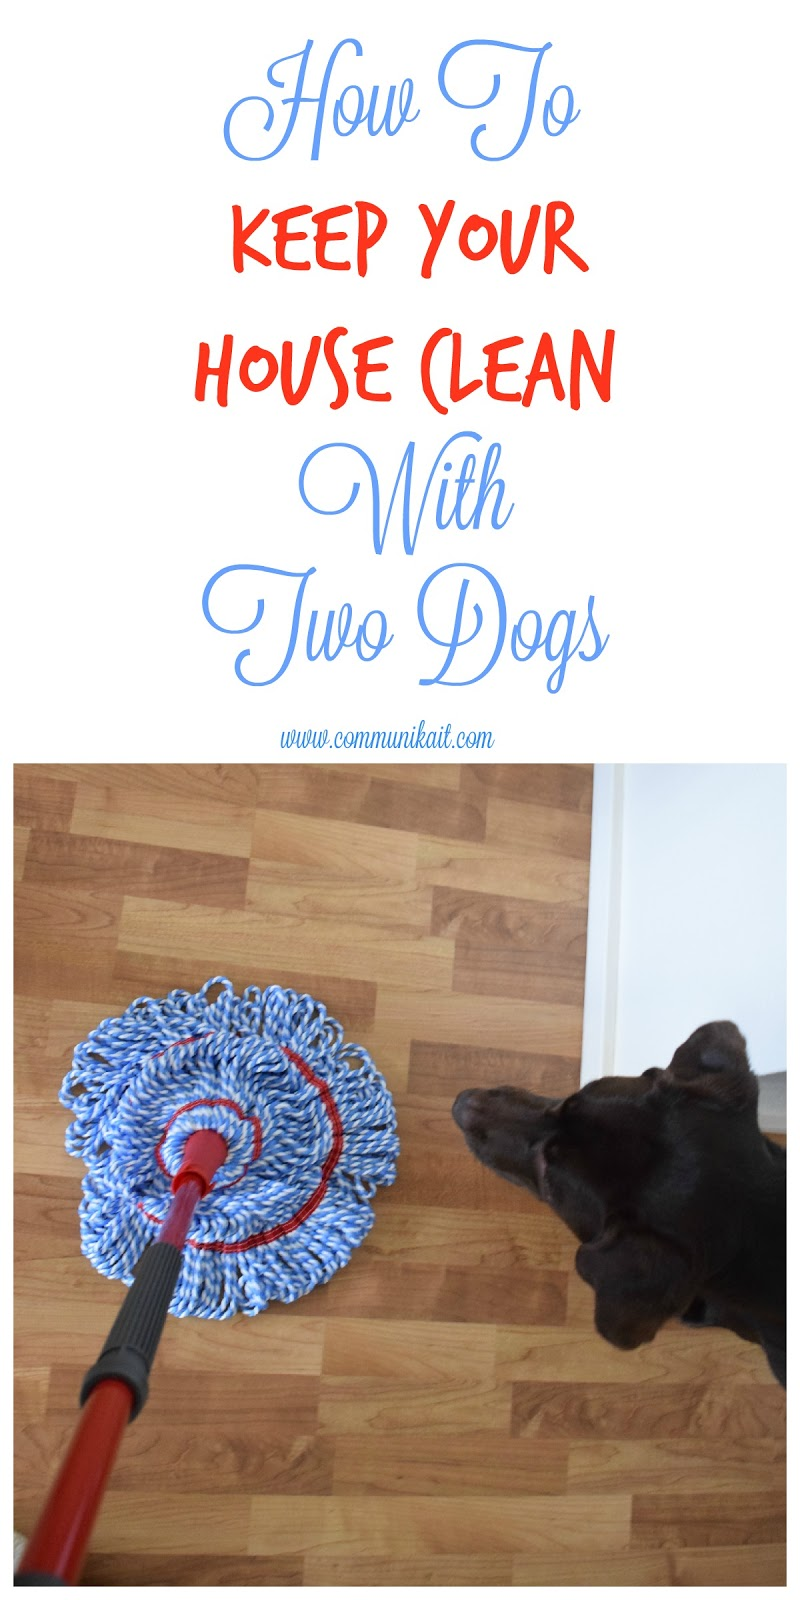 How To Keep My House Clean how i keep my house clean with two dogs - communikait